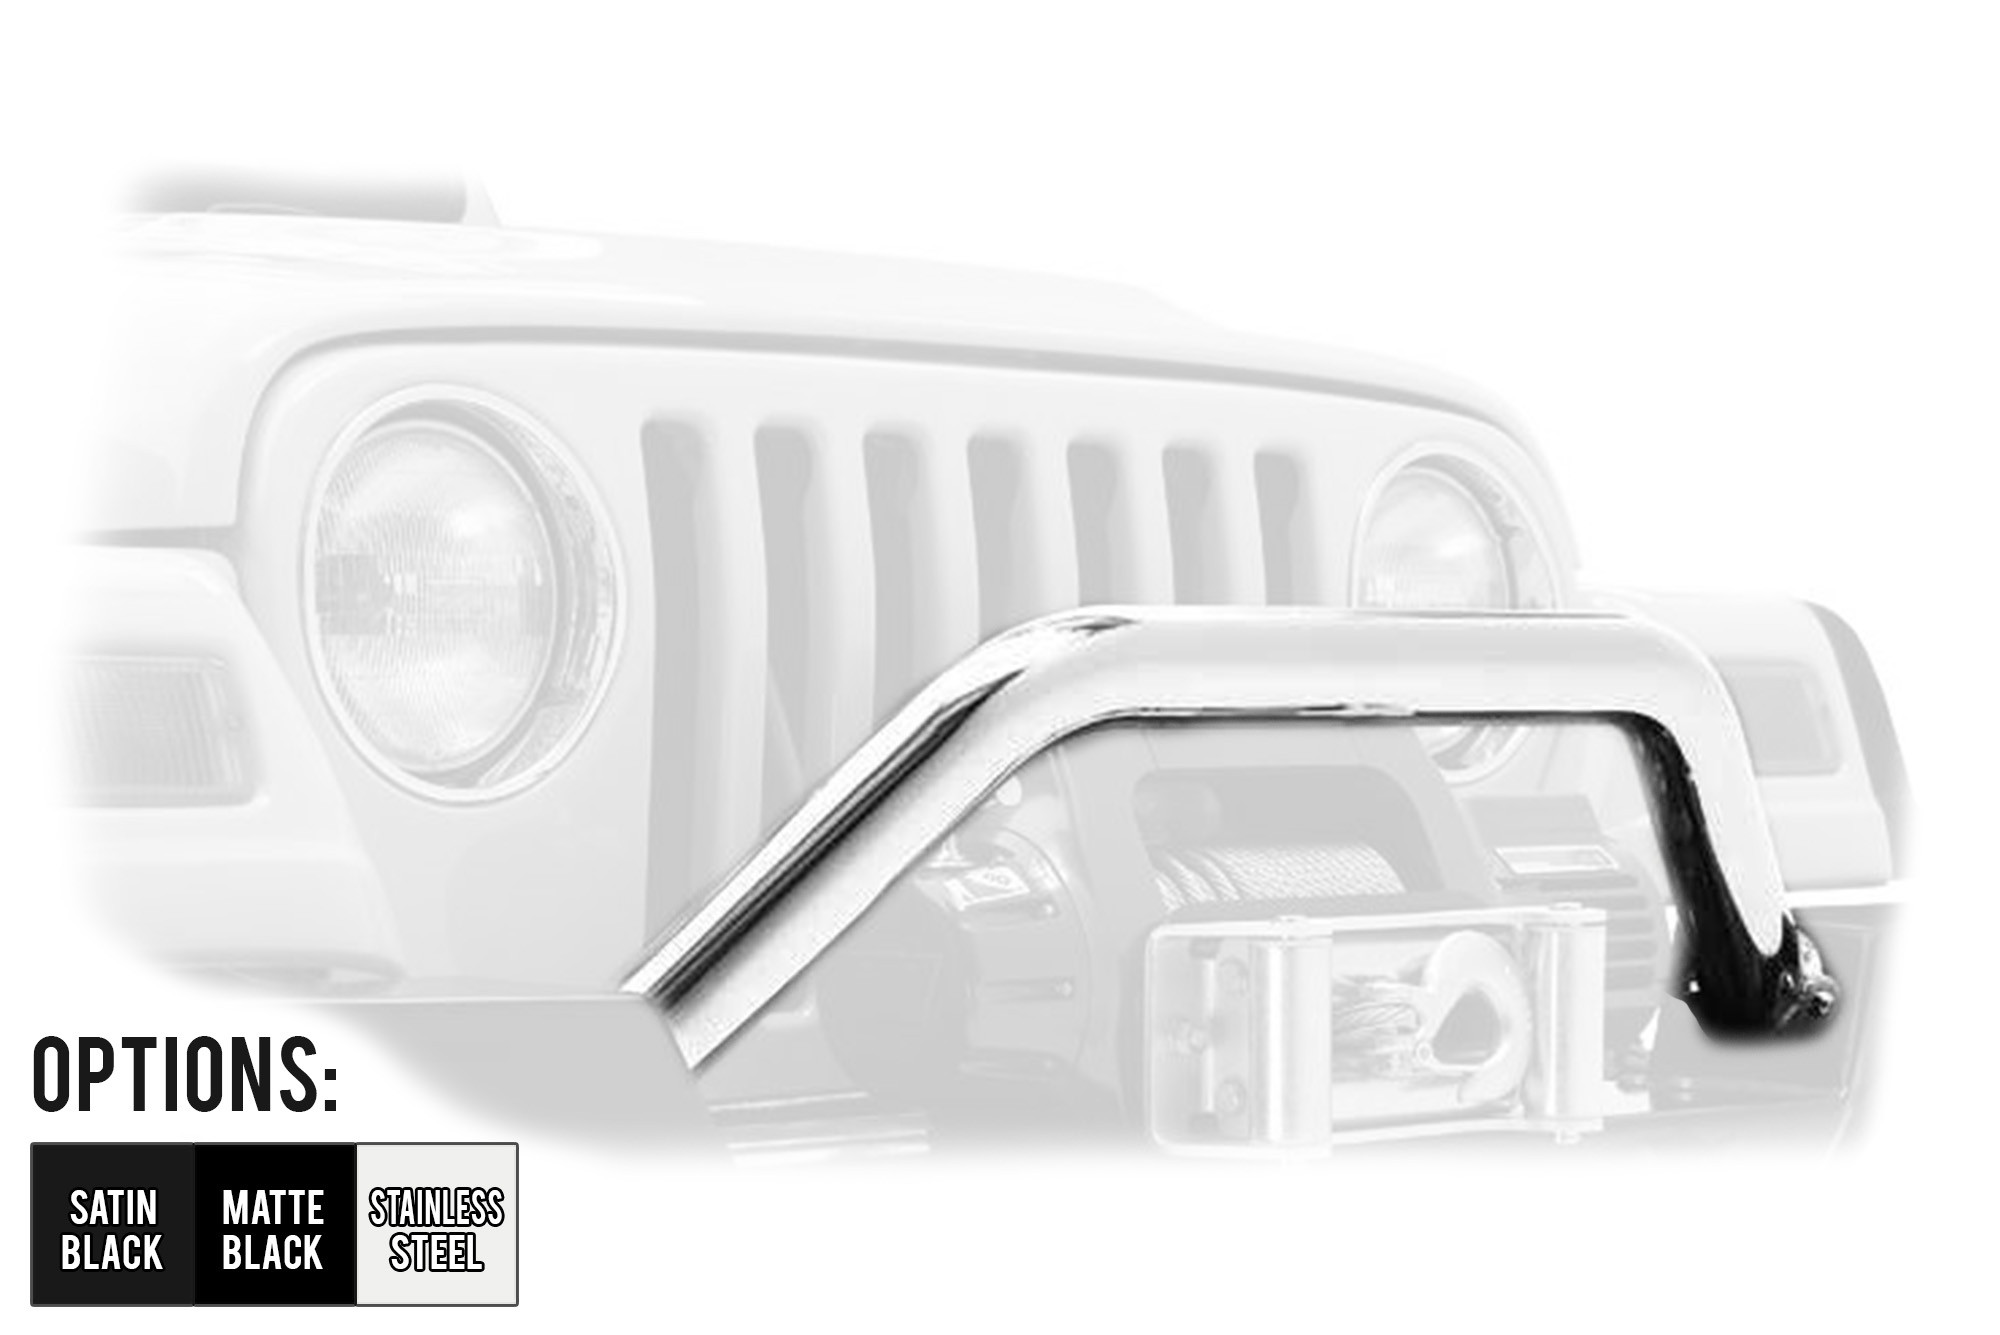 Bestop HighRock 4X4 Tubular Grill Guard For 1987-06 Various Jeep Models (See Details)